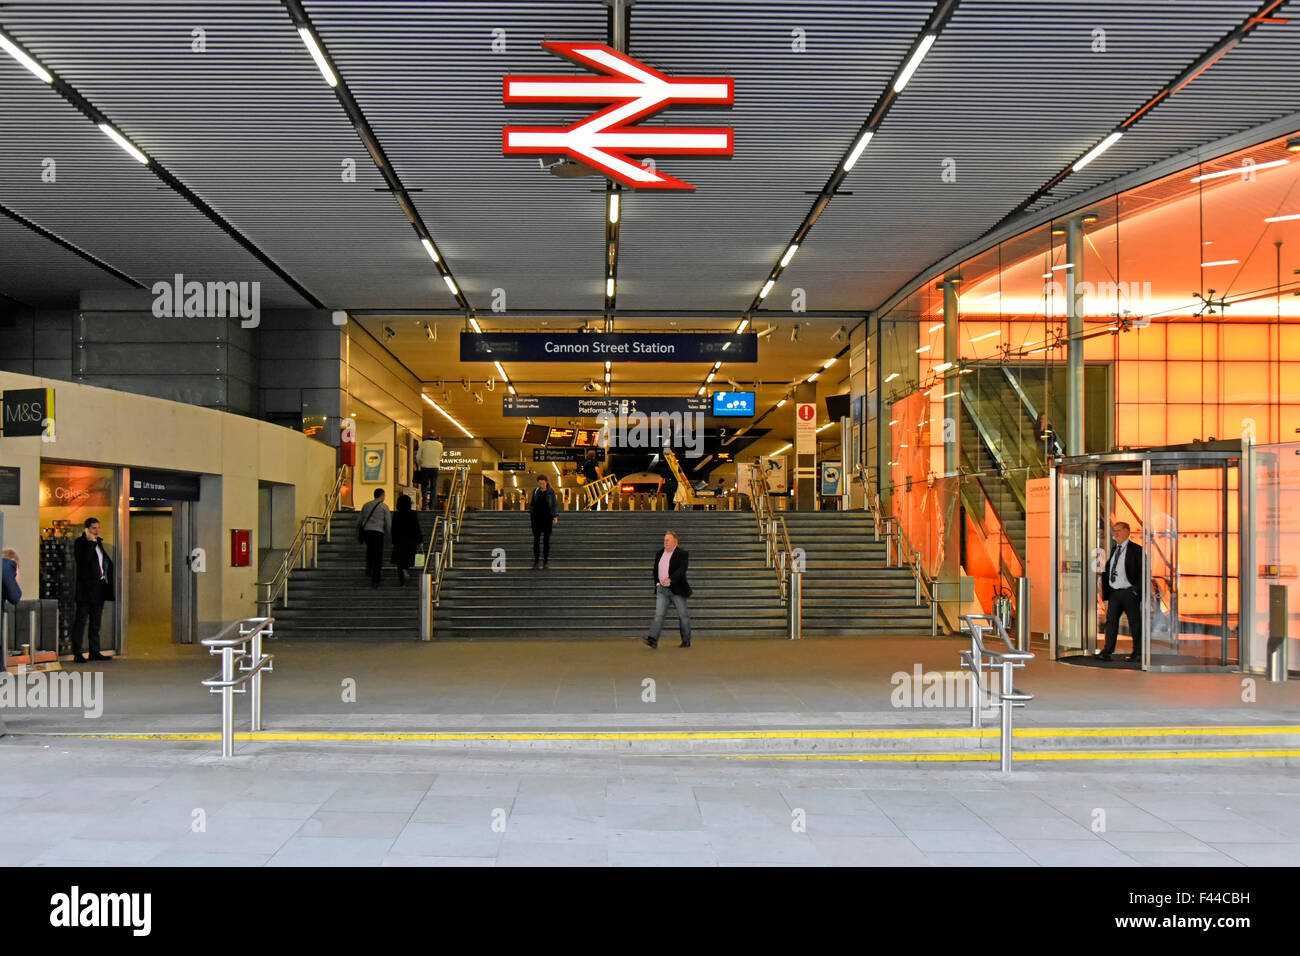 Cannon Street train station entrance with British Railways sign station managed by Network Rail & incorporated - Stock Image